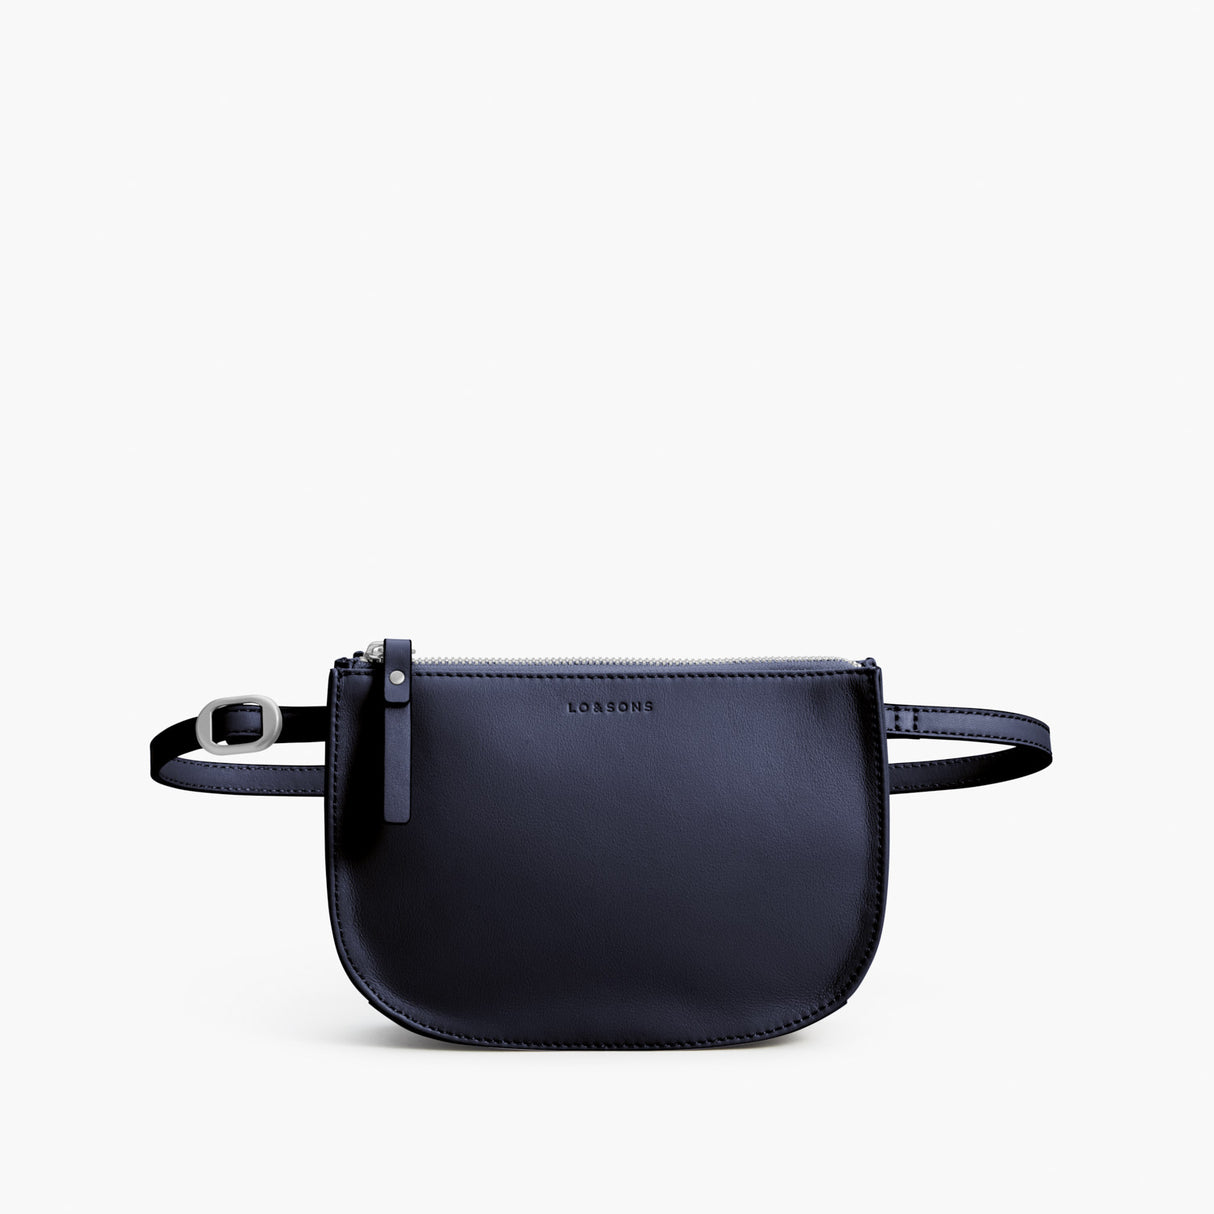 Front Beltbag - The Waverley 2 - Nappa Leather - Deep Navy / Silver / Azure - Crossbody - Lo & Sons